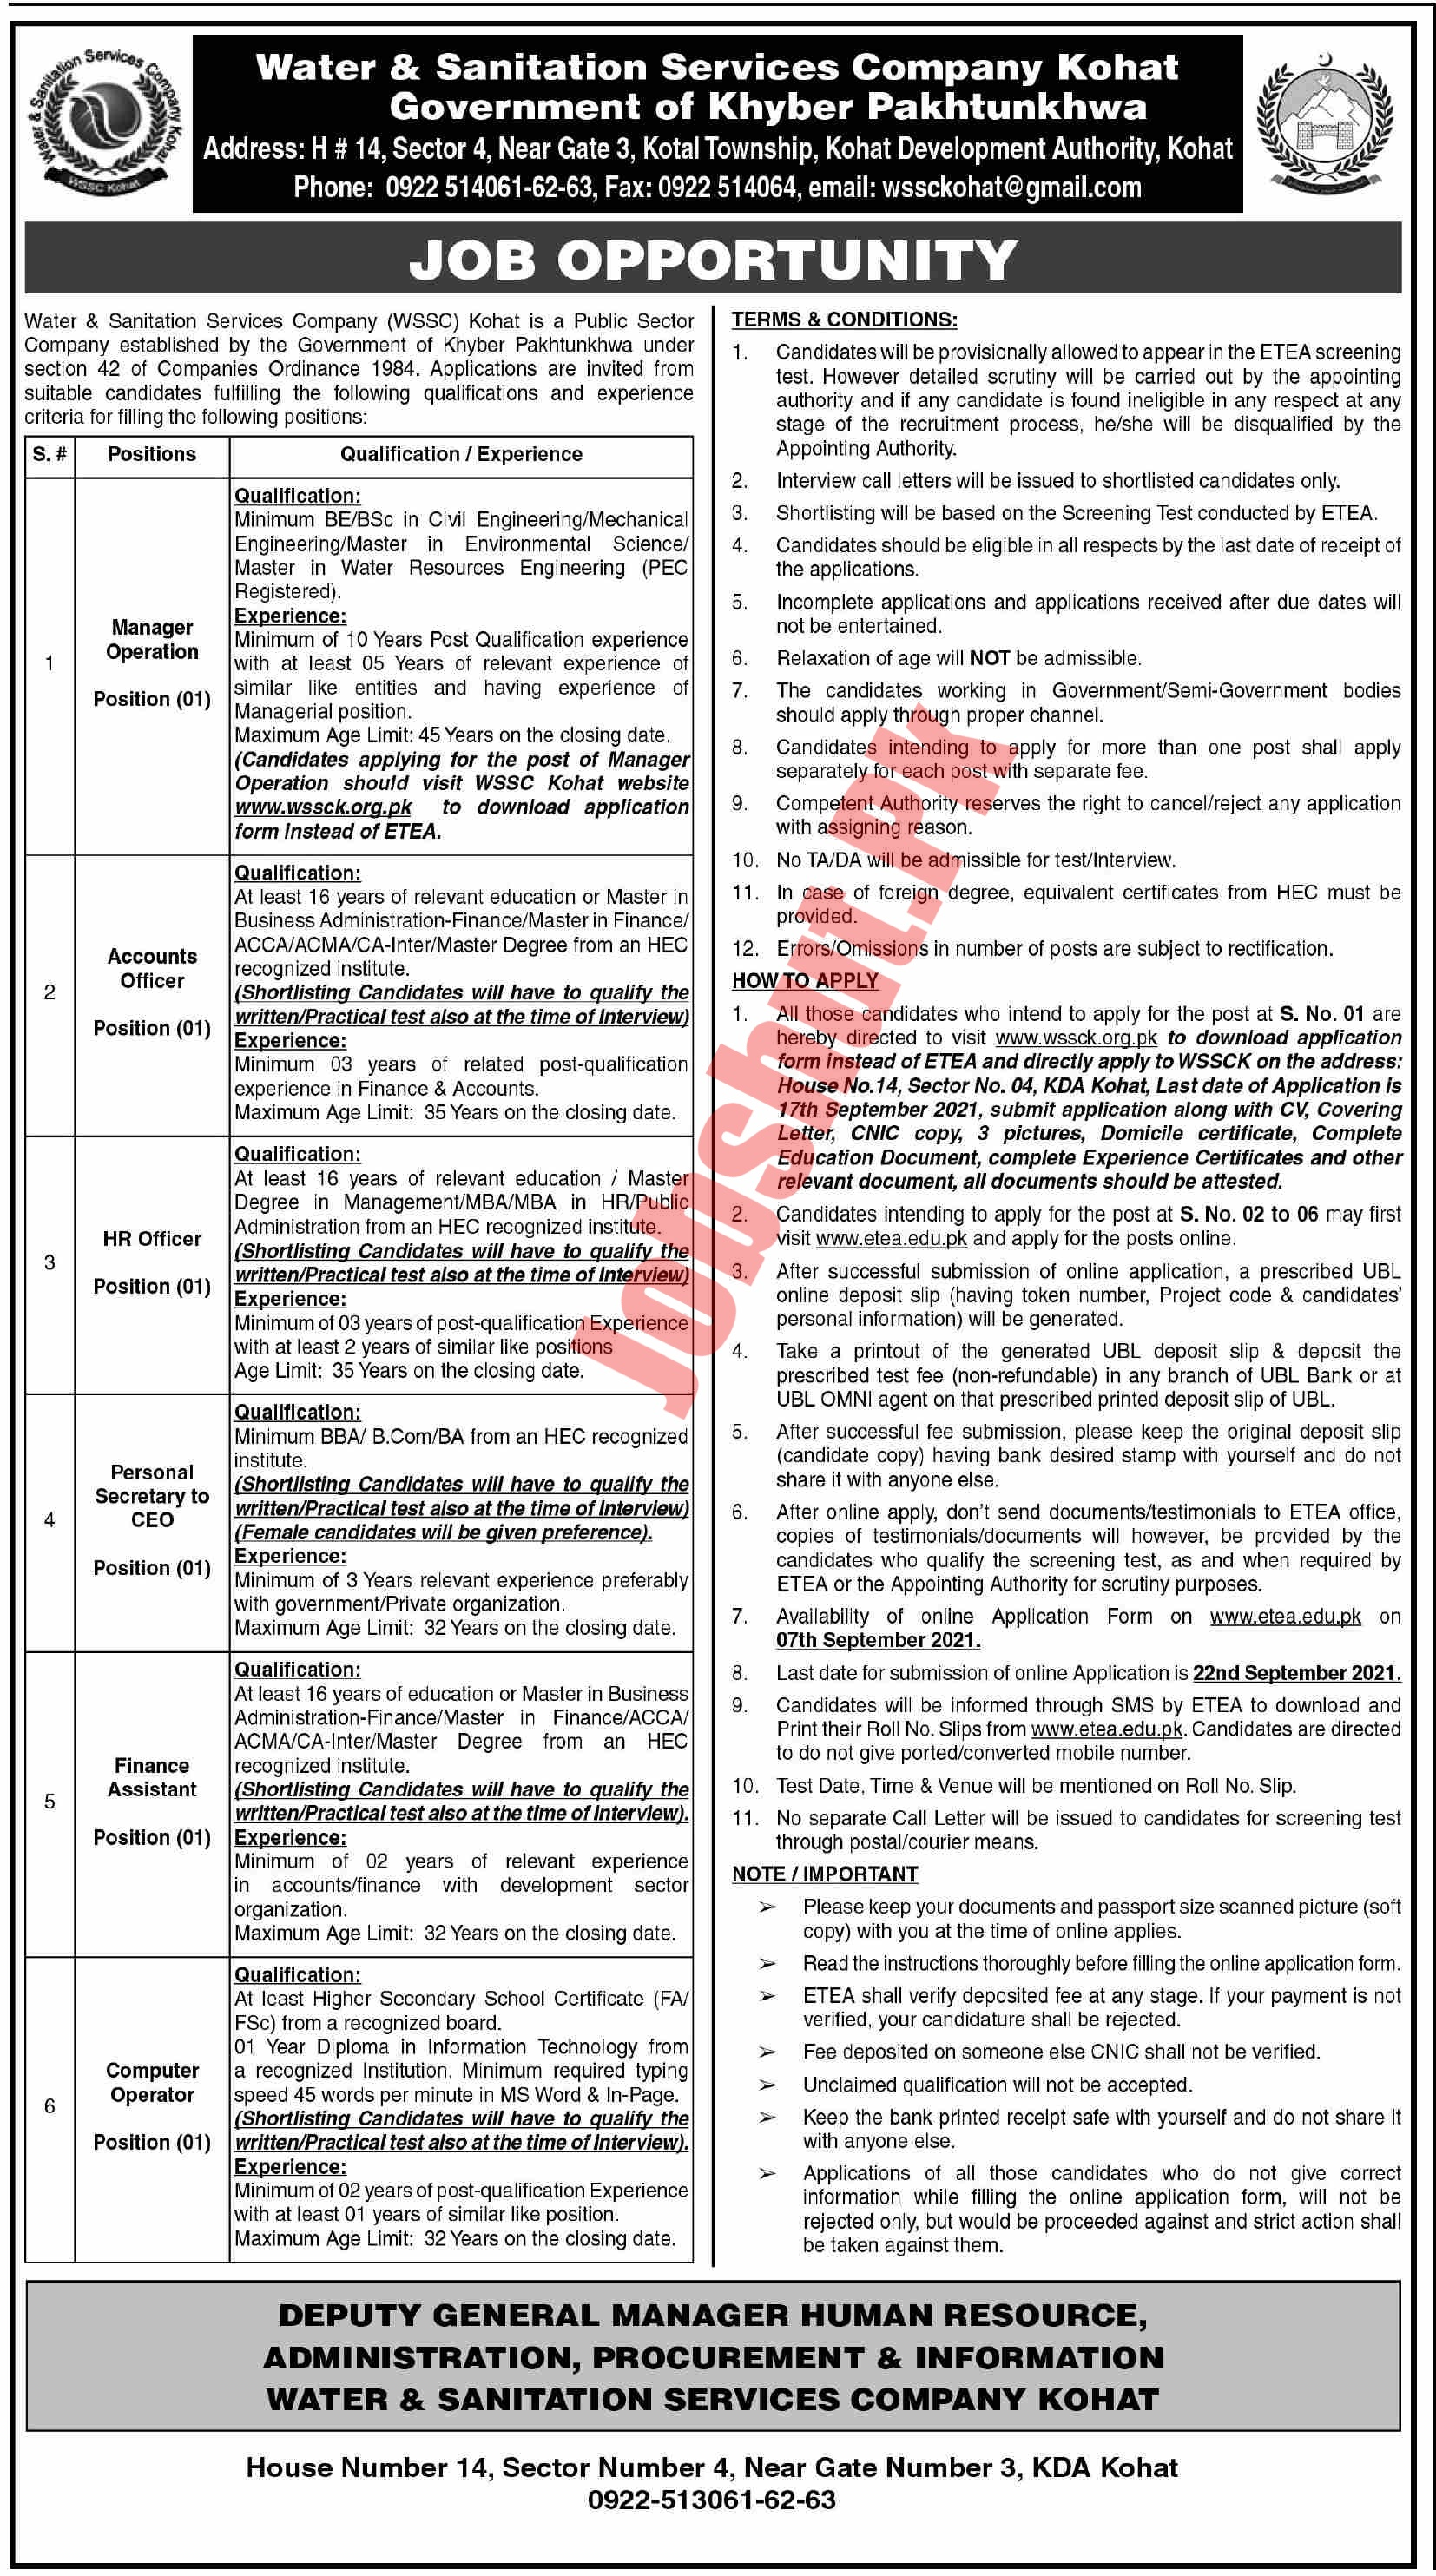 Water and Sanitation Services Company Kohat jobs advertisement